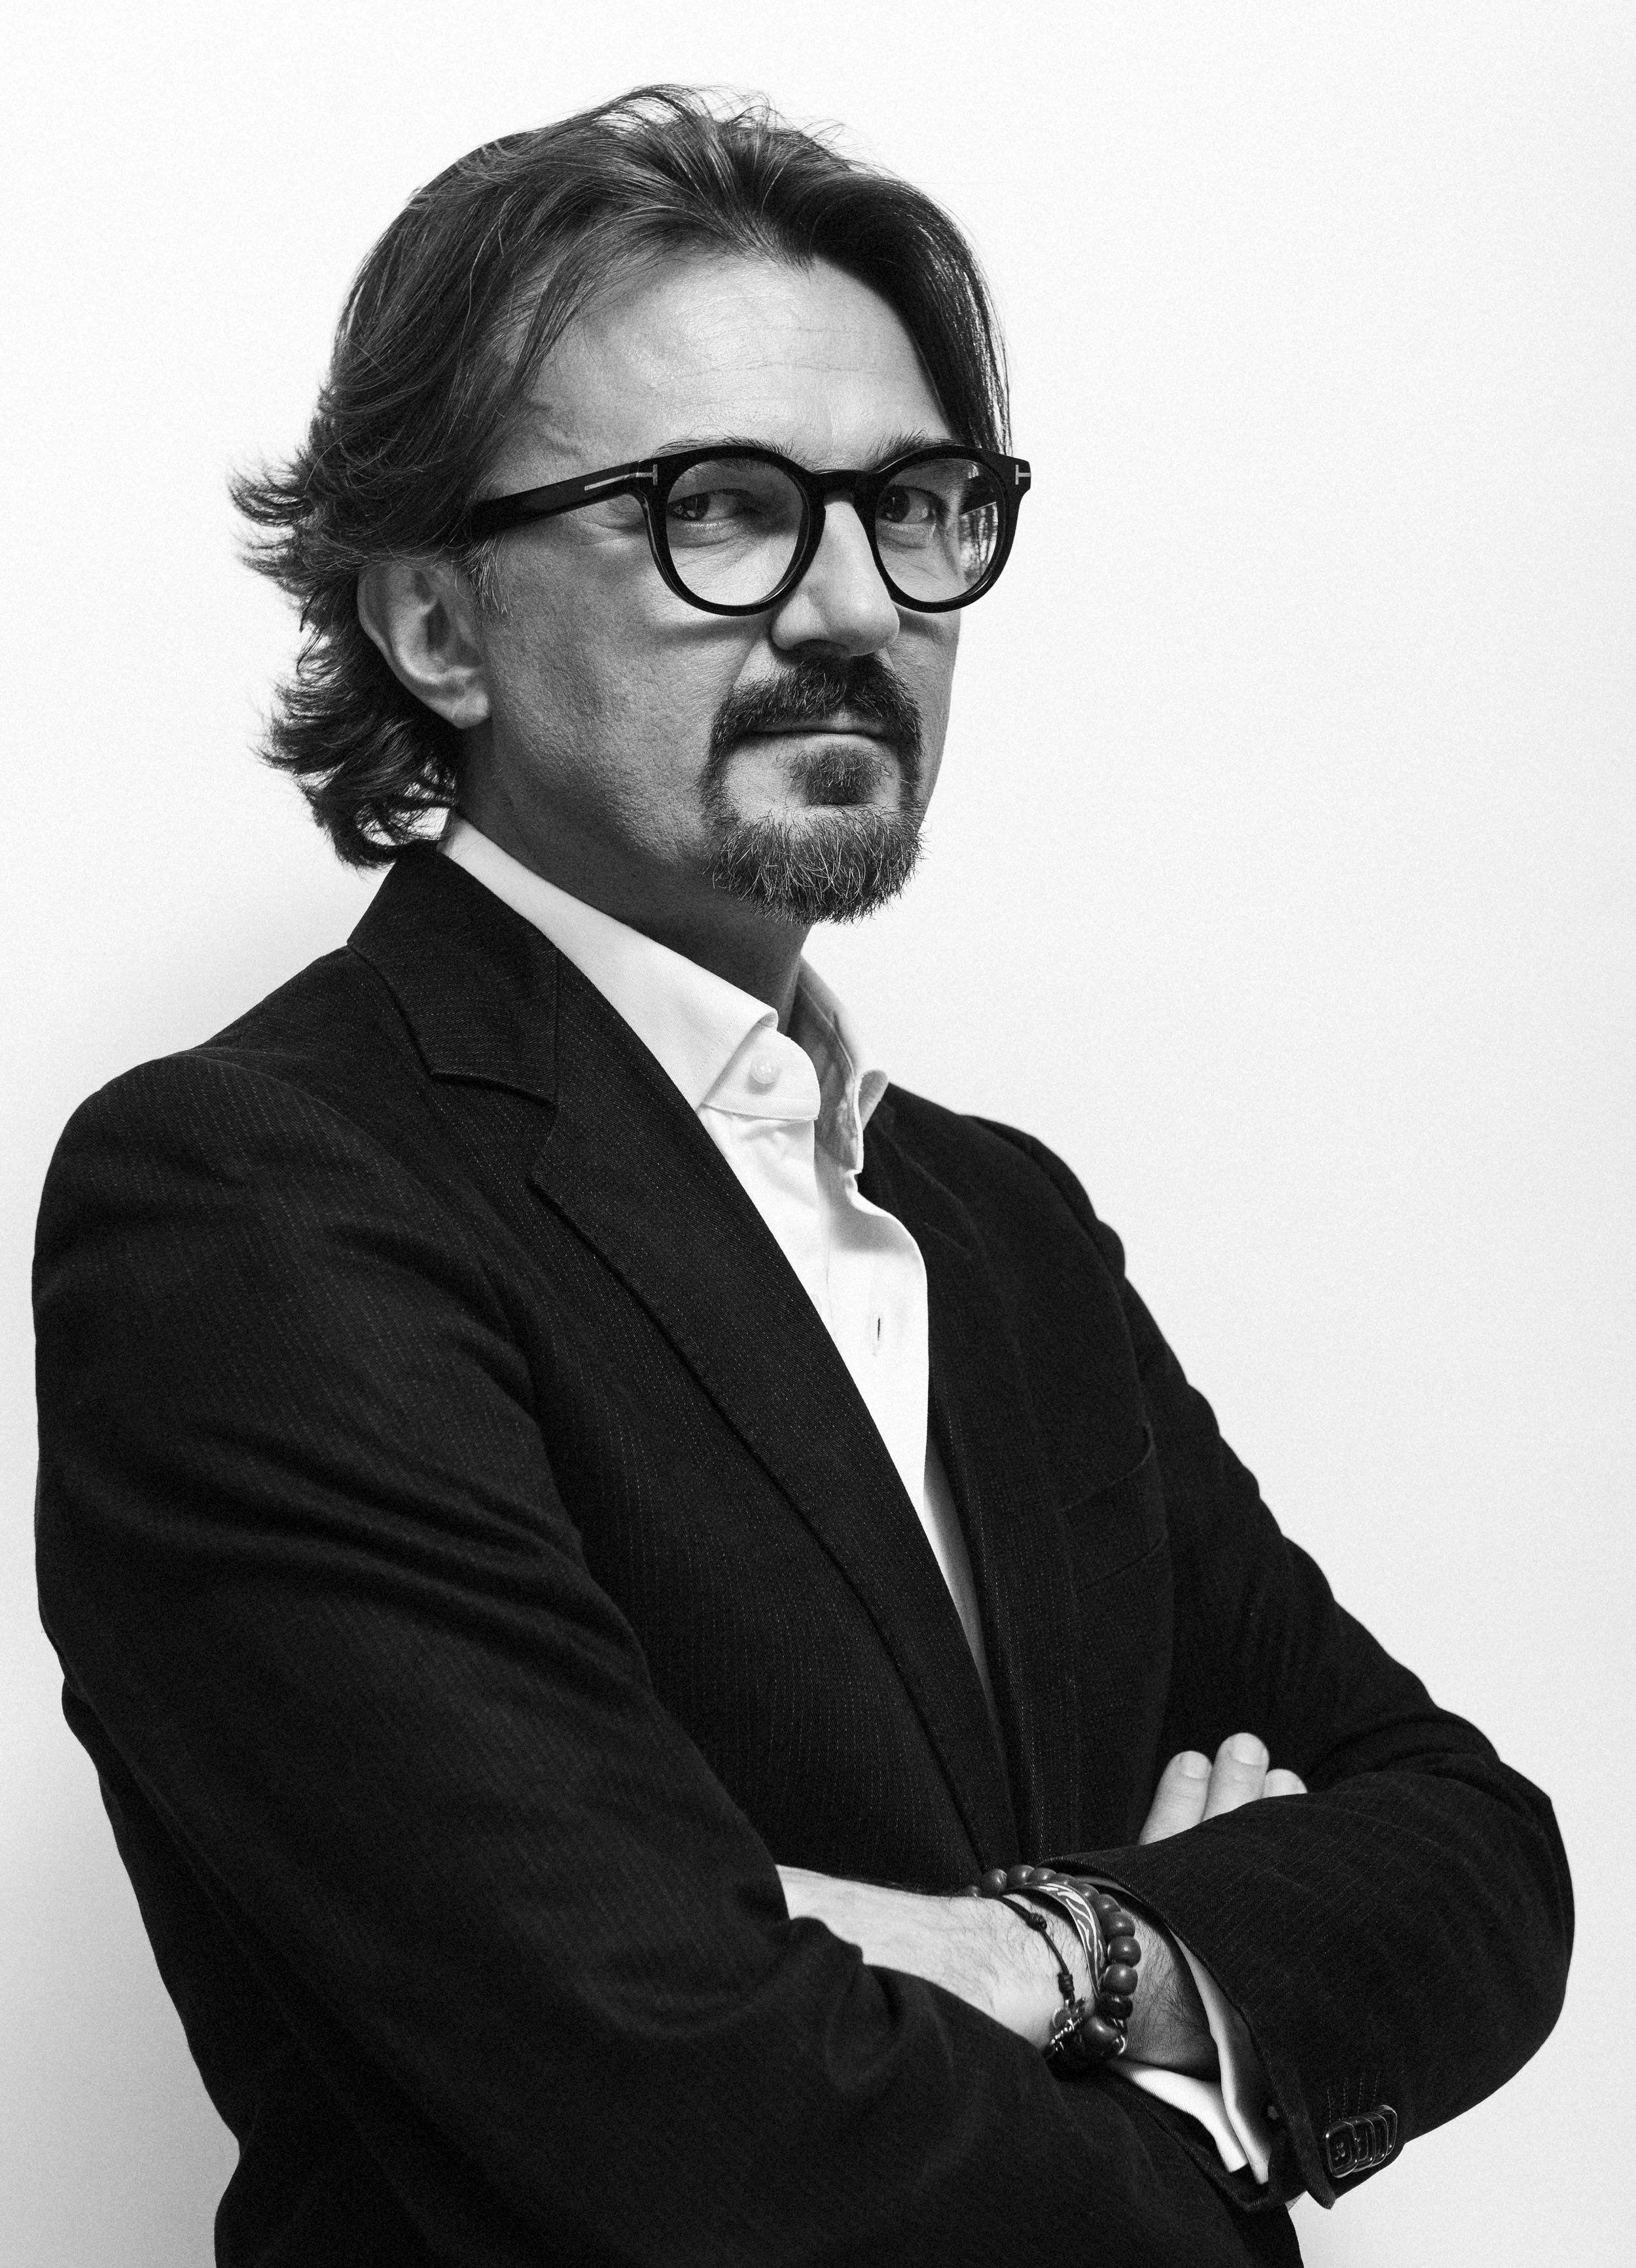 Ermanno CAROPPI, ARCHITECT, FOUNDER